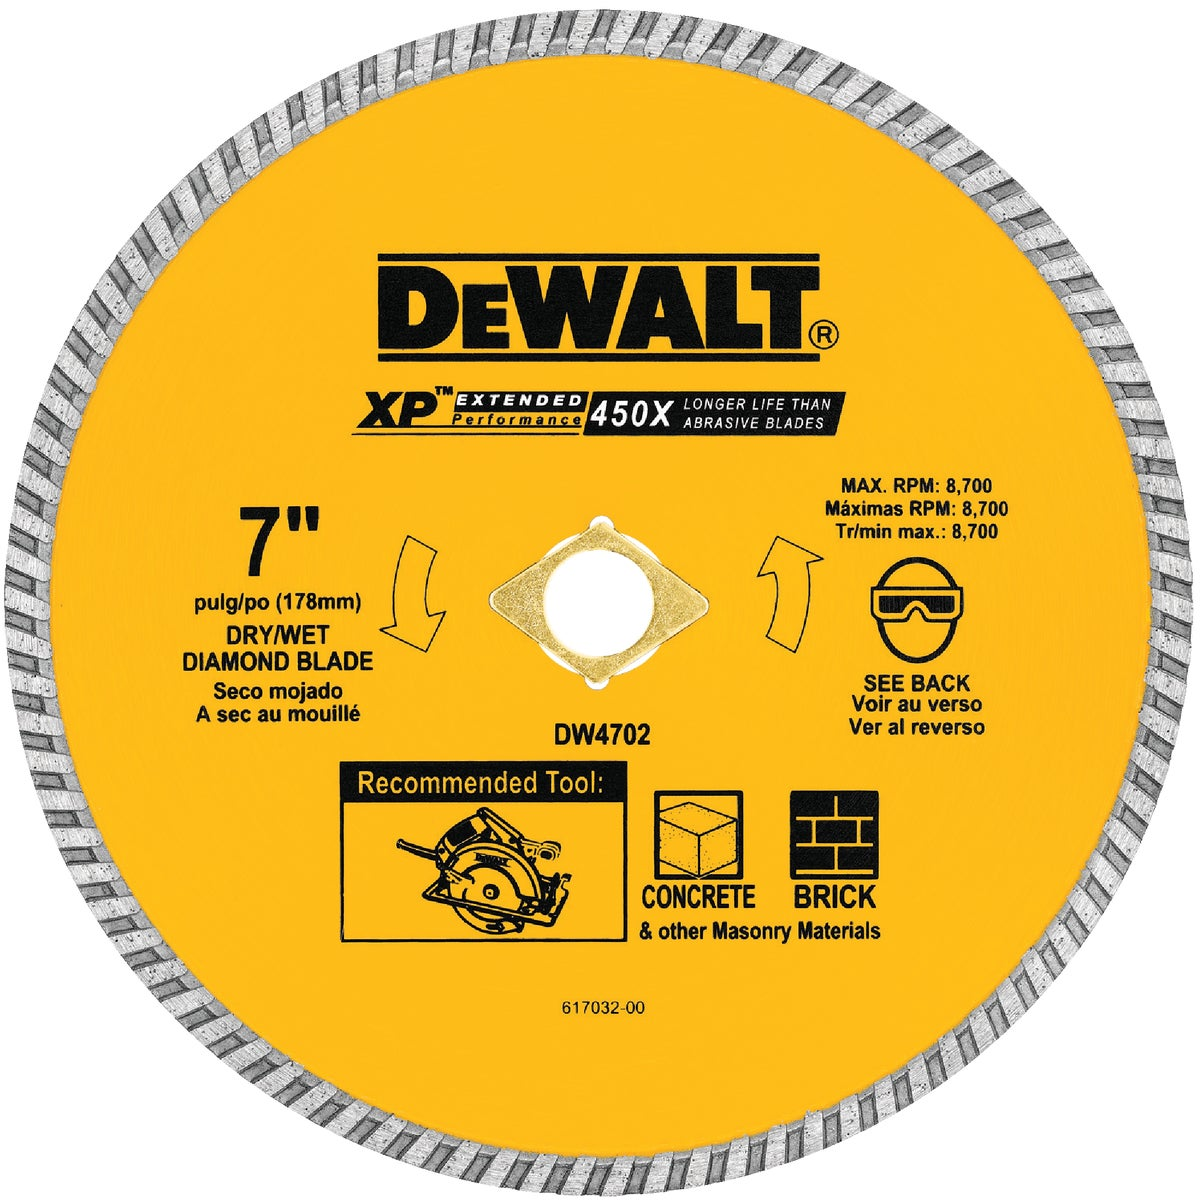 "7"" DRY CUT DIAMOND WHEEL - DW4702 by DeWalt"